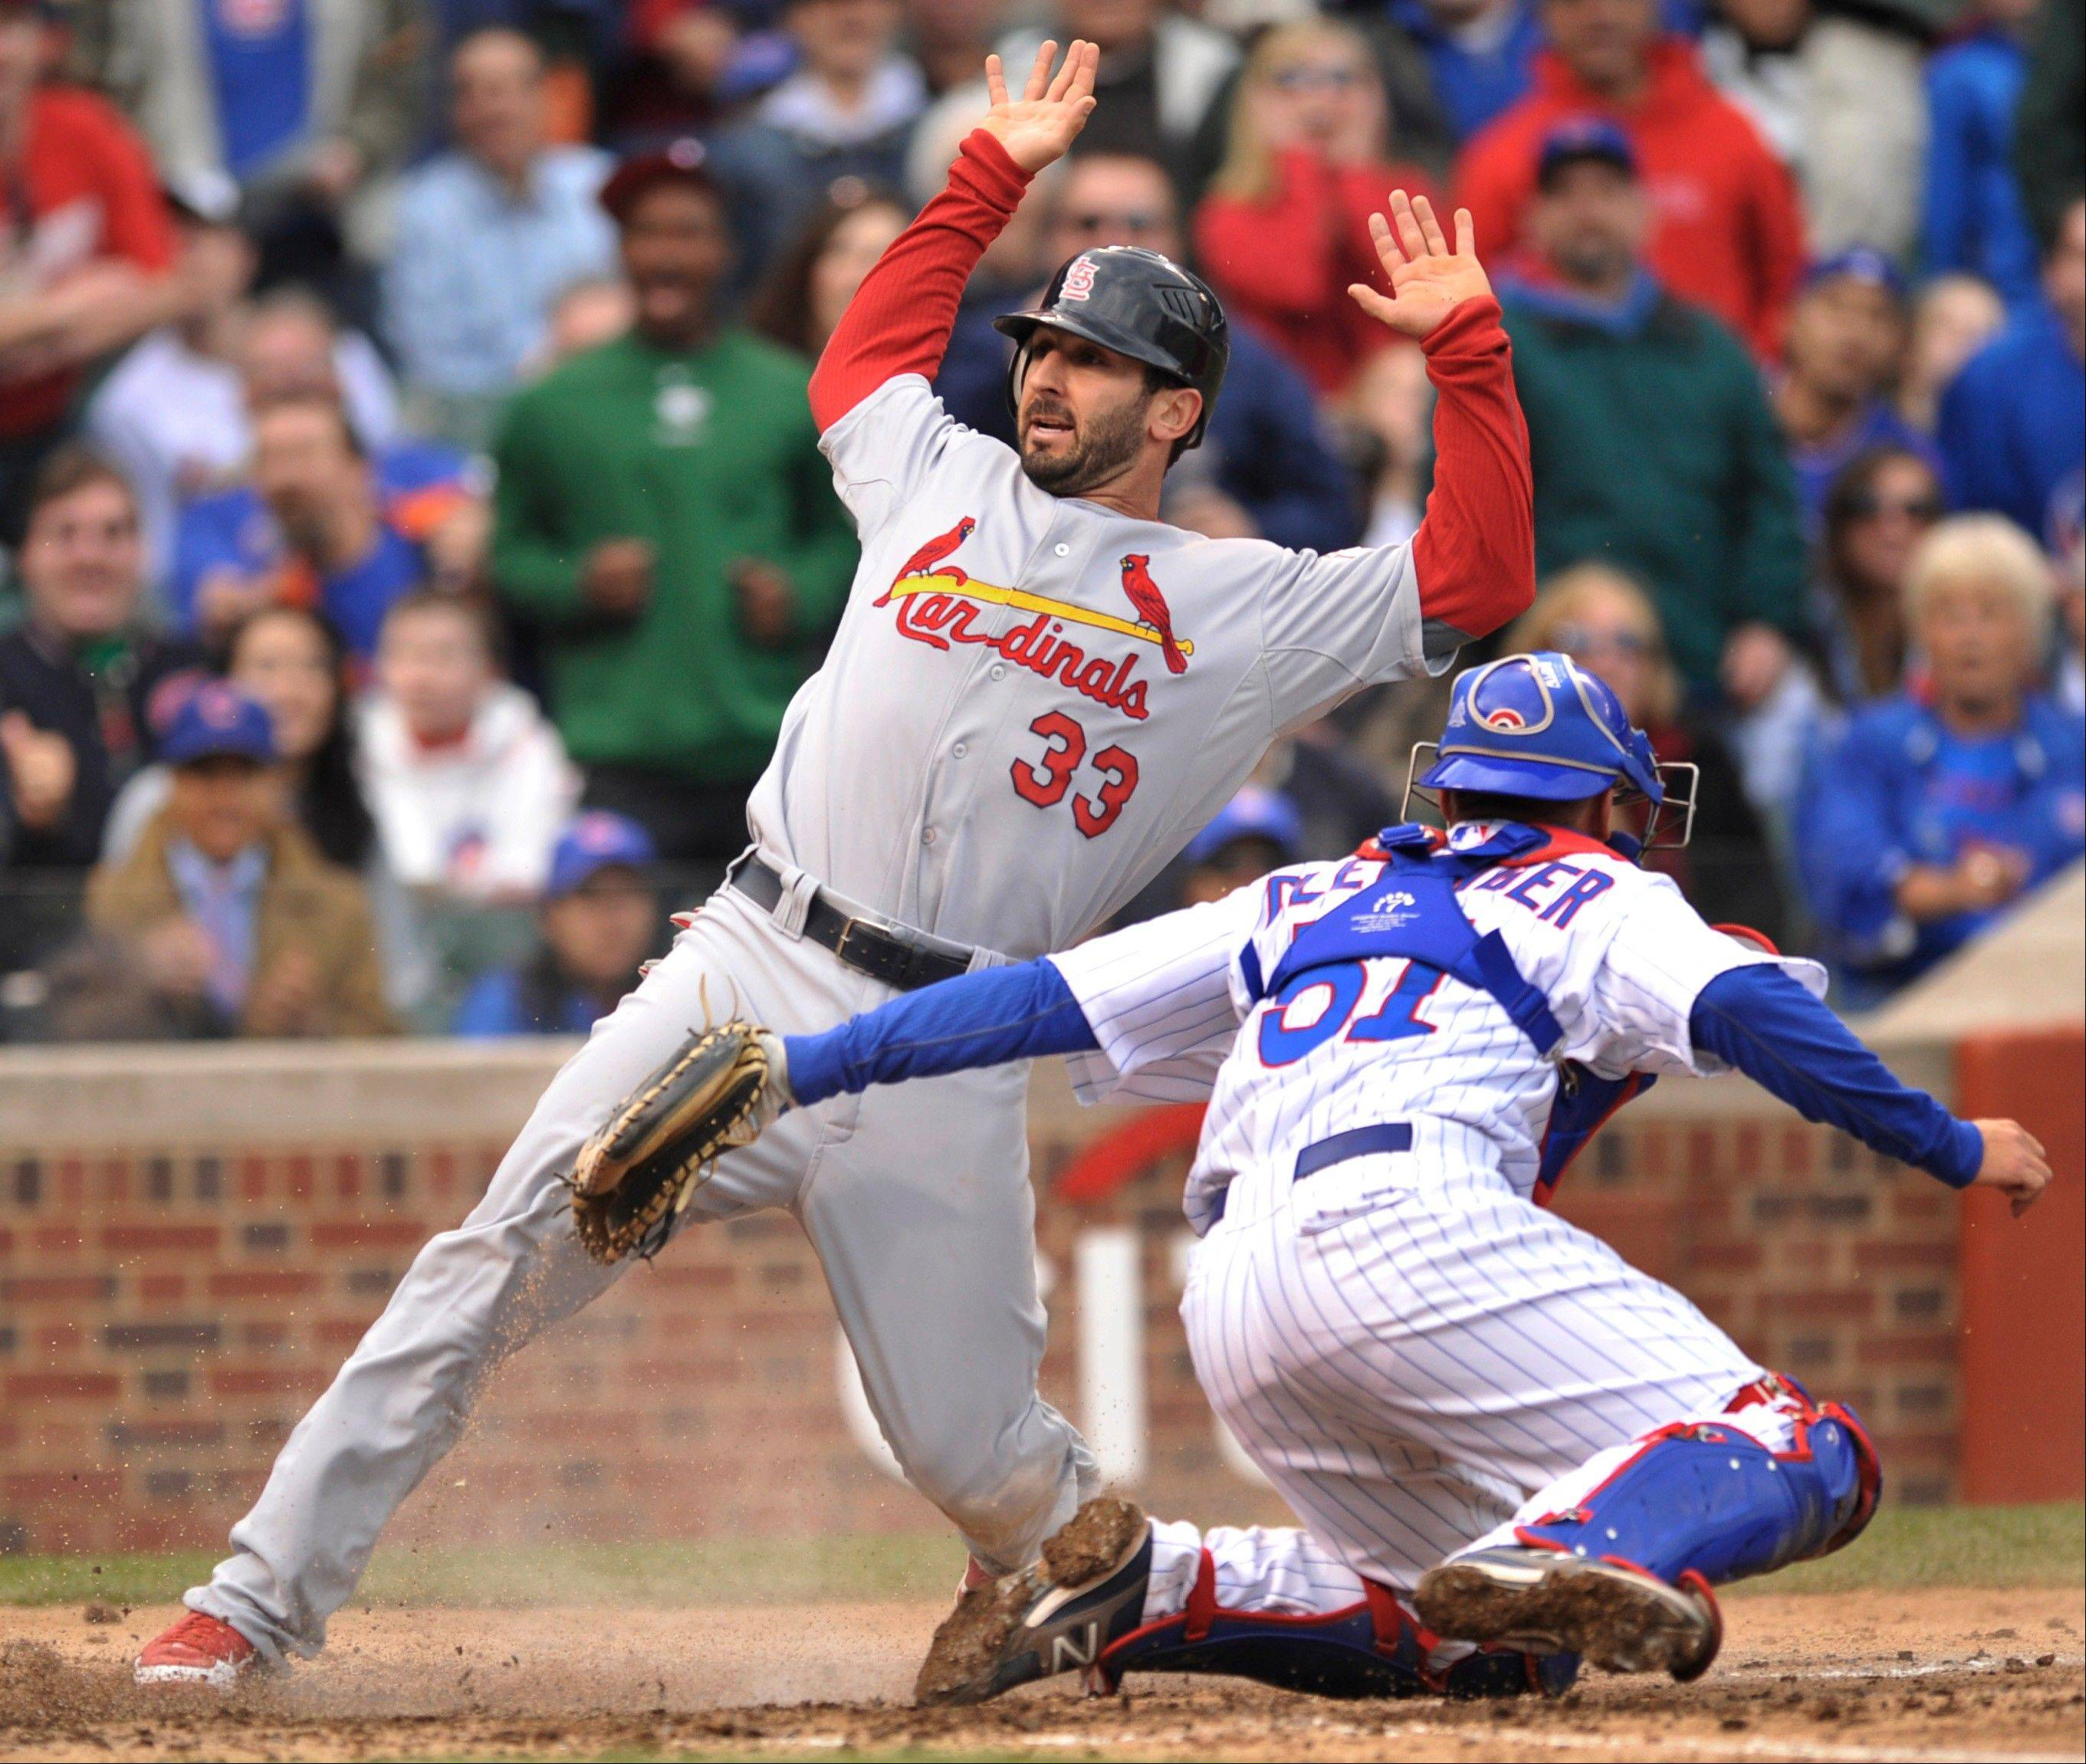 The St. Louis Cardinals' Daniel Descalso scores on a Matt Carpenter single as Cubs catcher Steve Clevenger tries to apply the tag Wednesday during the third inning.